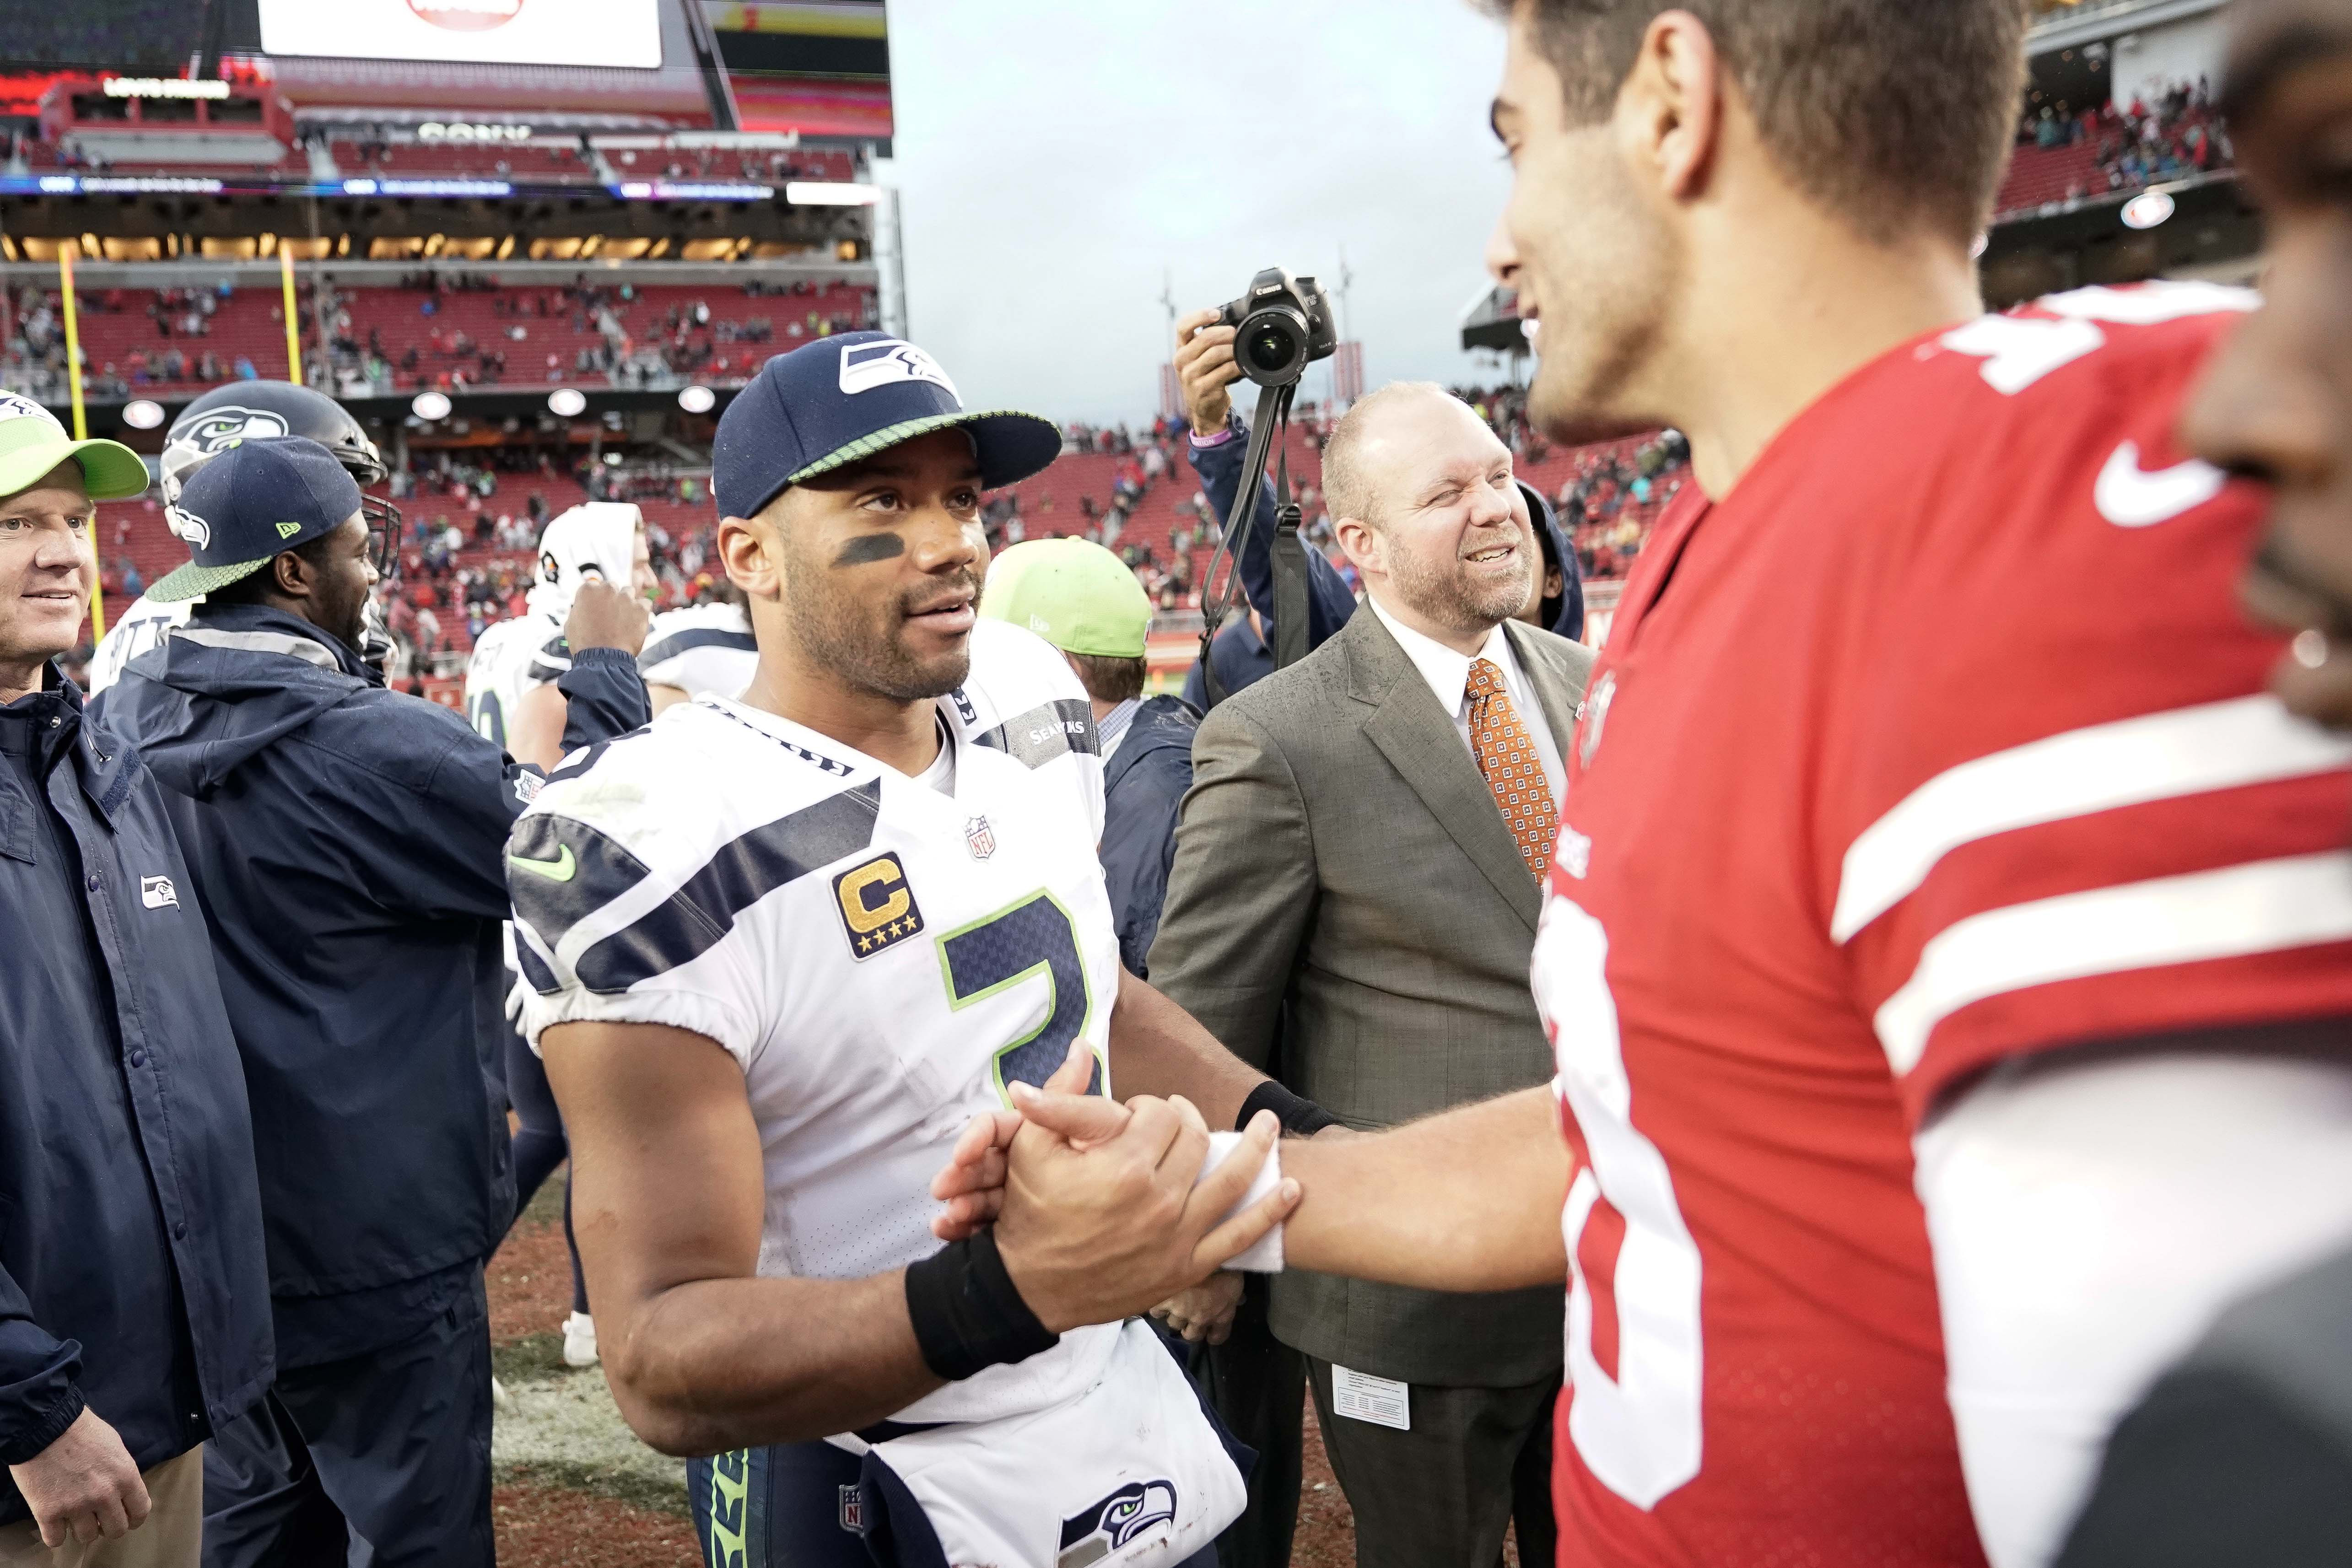 Seattle Seahawks quarterback Russell Wilson shakes hands with San Francisco 49ers quarterback Jimmy Garoppolo after the Seahawks win at Levi's Stadium in Santa Clara, California.